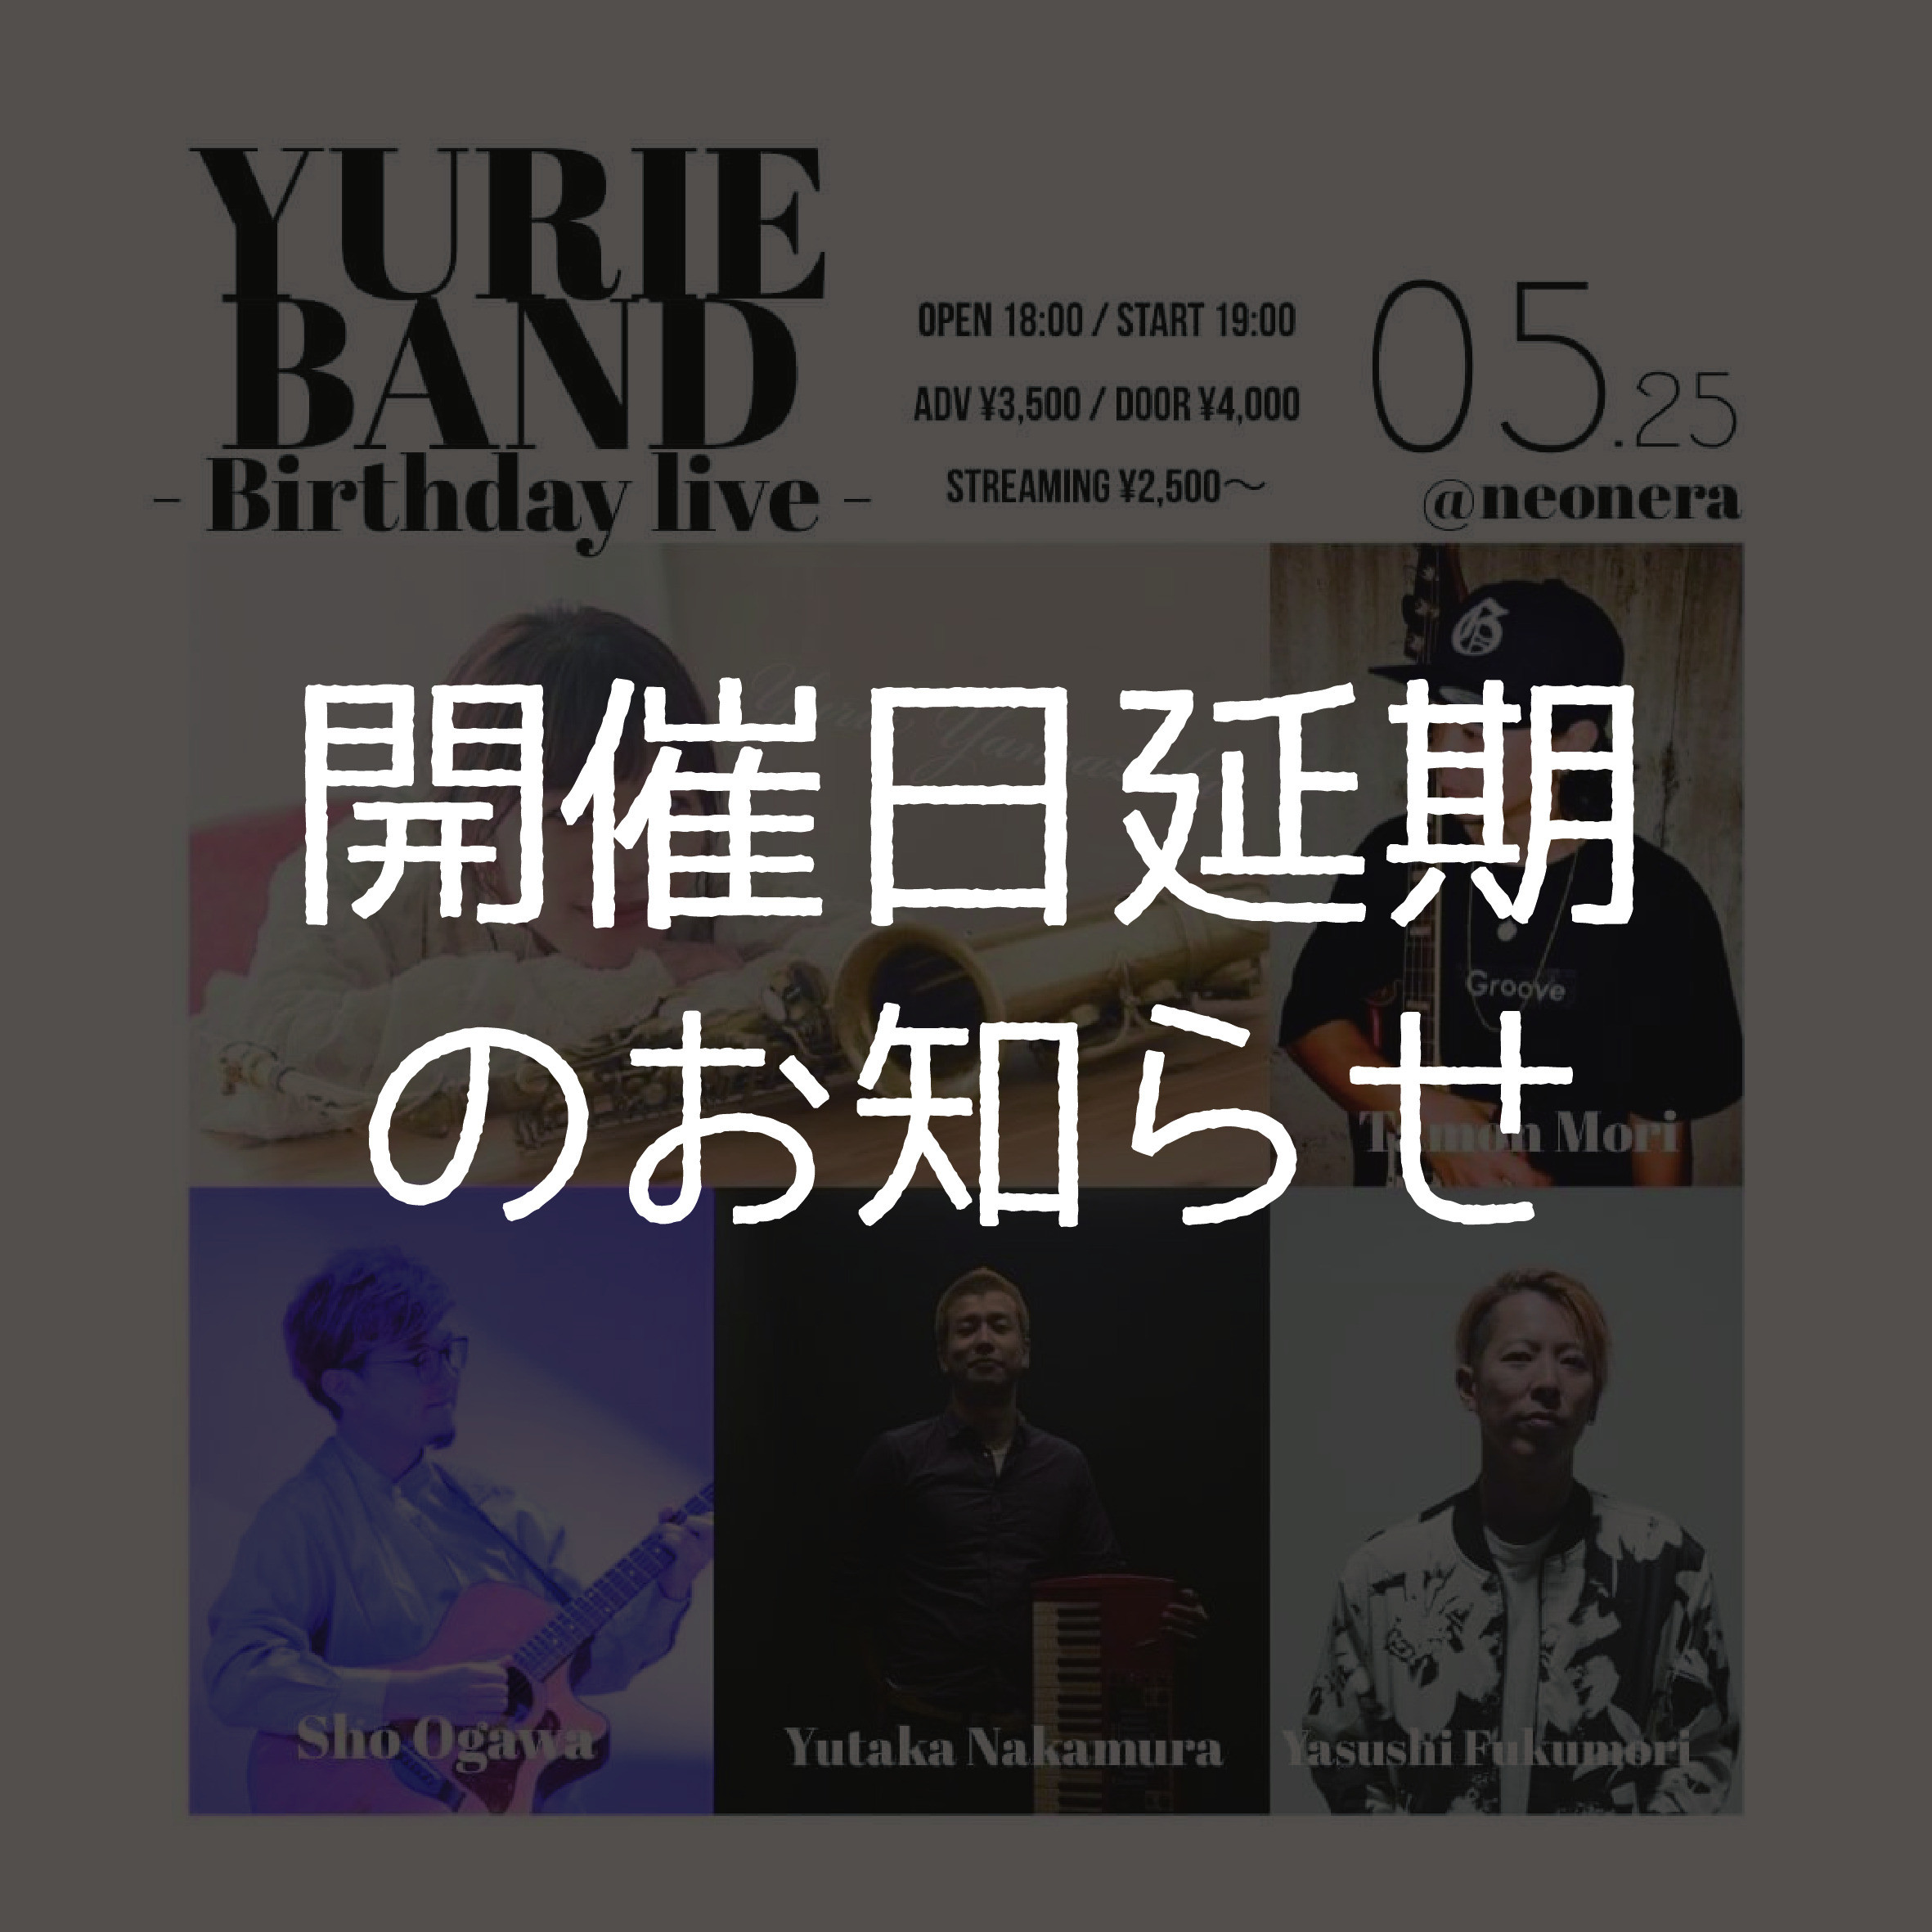 5月25日(火)YURIE BAND -Birthday live-